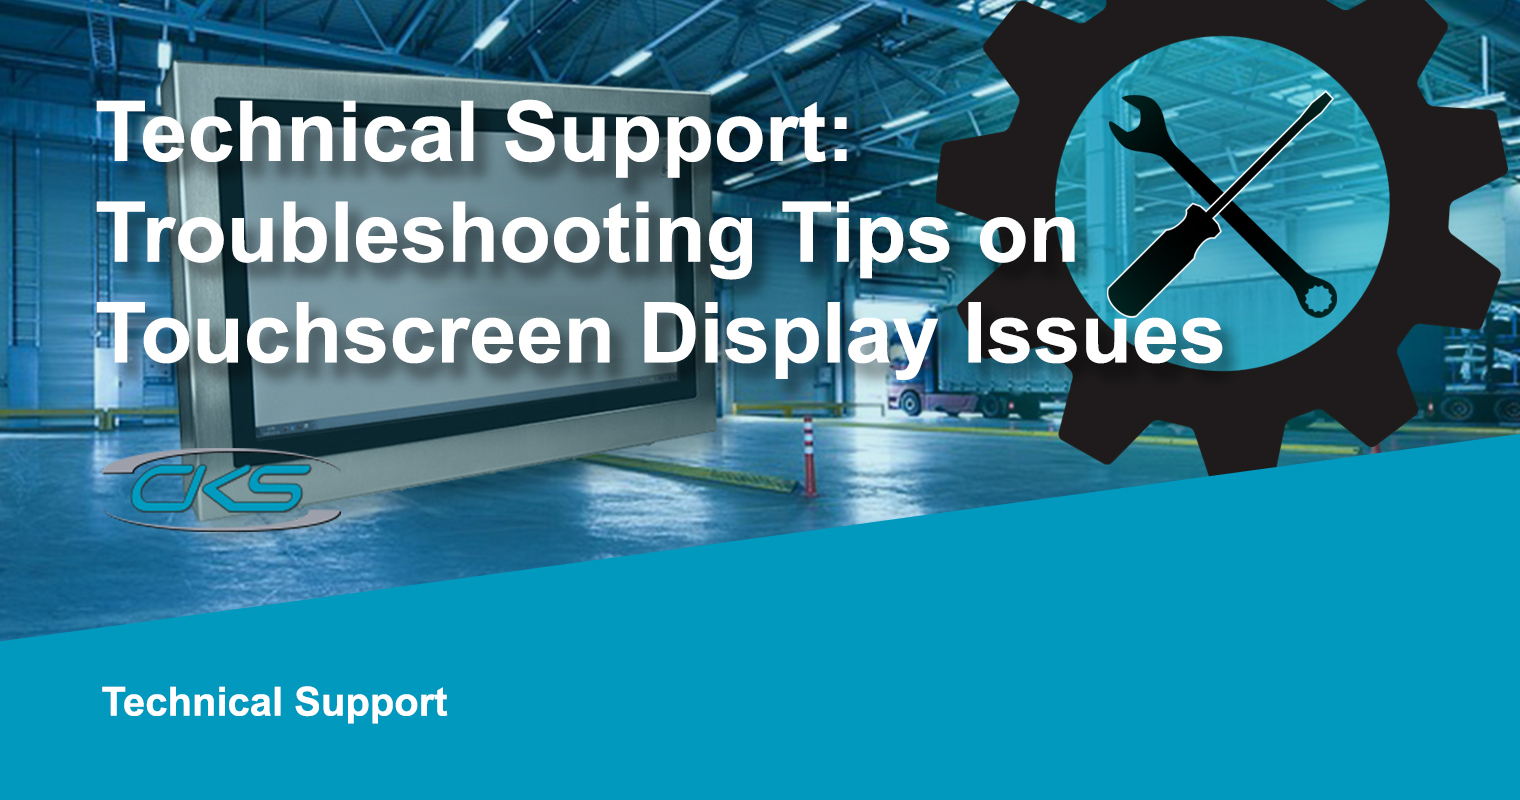 Technical Support Troubleshooting Tips About Touchscreen Display PC Issues